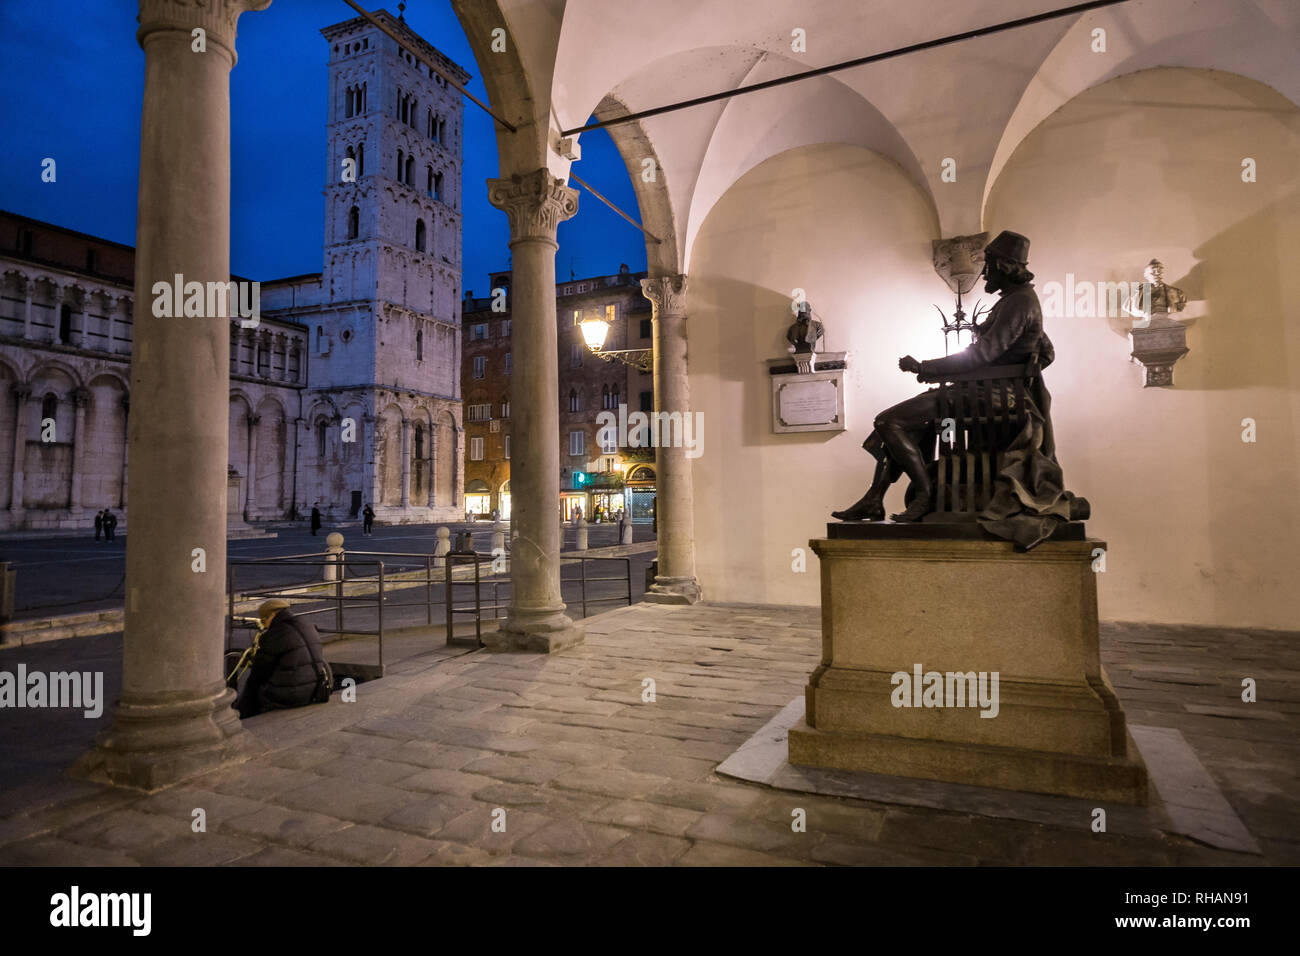 Statue of the Italian sculptor, painter and architect Matteo